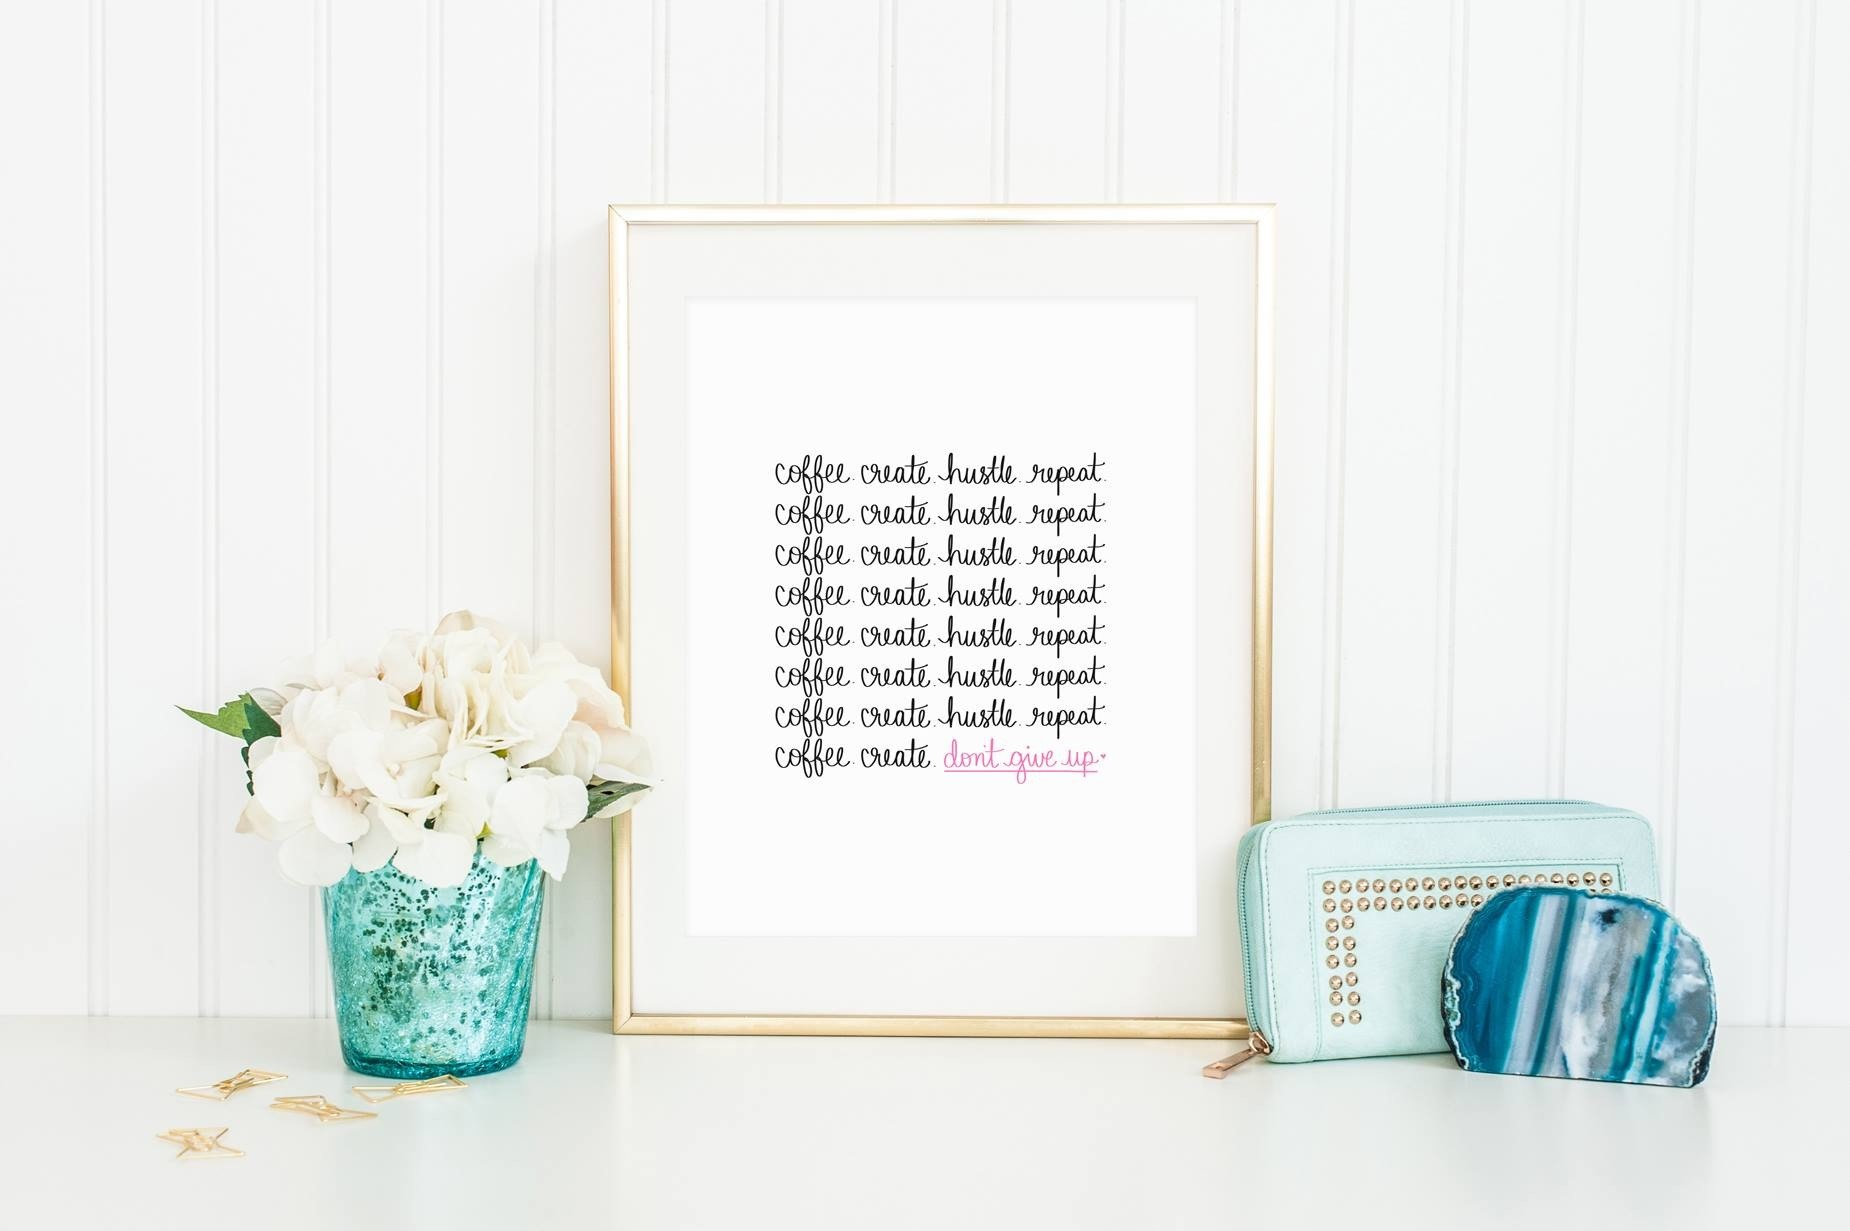 Coffee-Create-Hustle-Repeat-Wall-Print-Etsy-Canada-Dayna-Lee-Collection